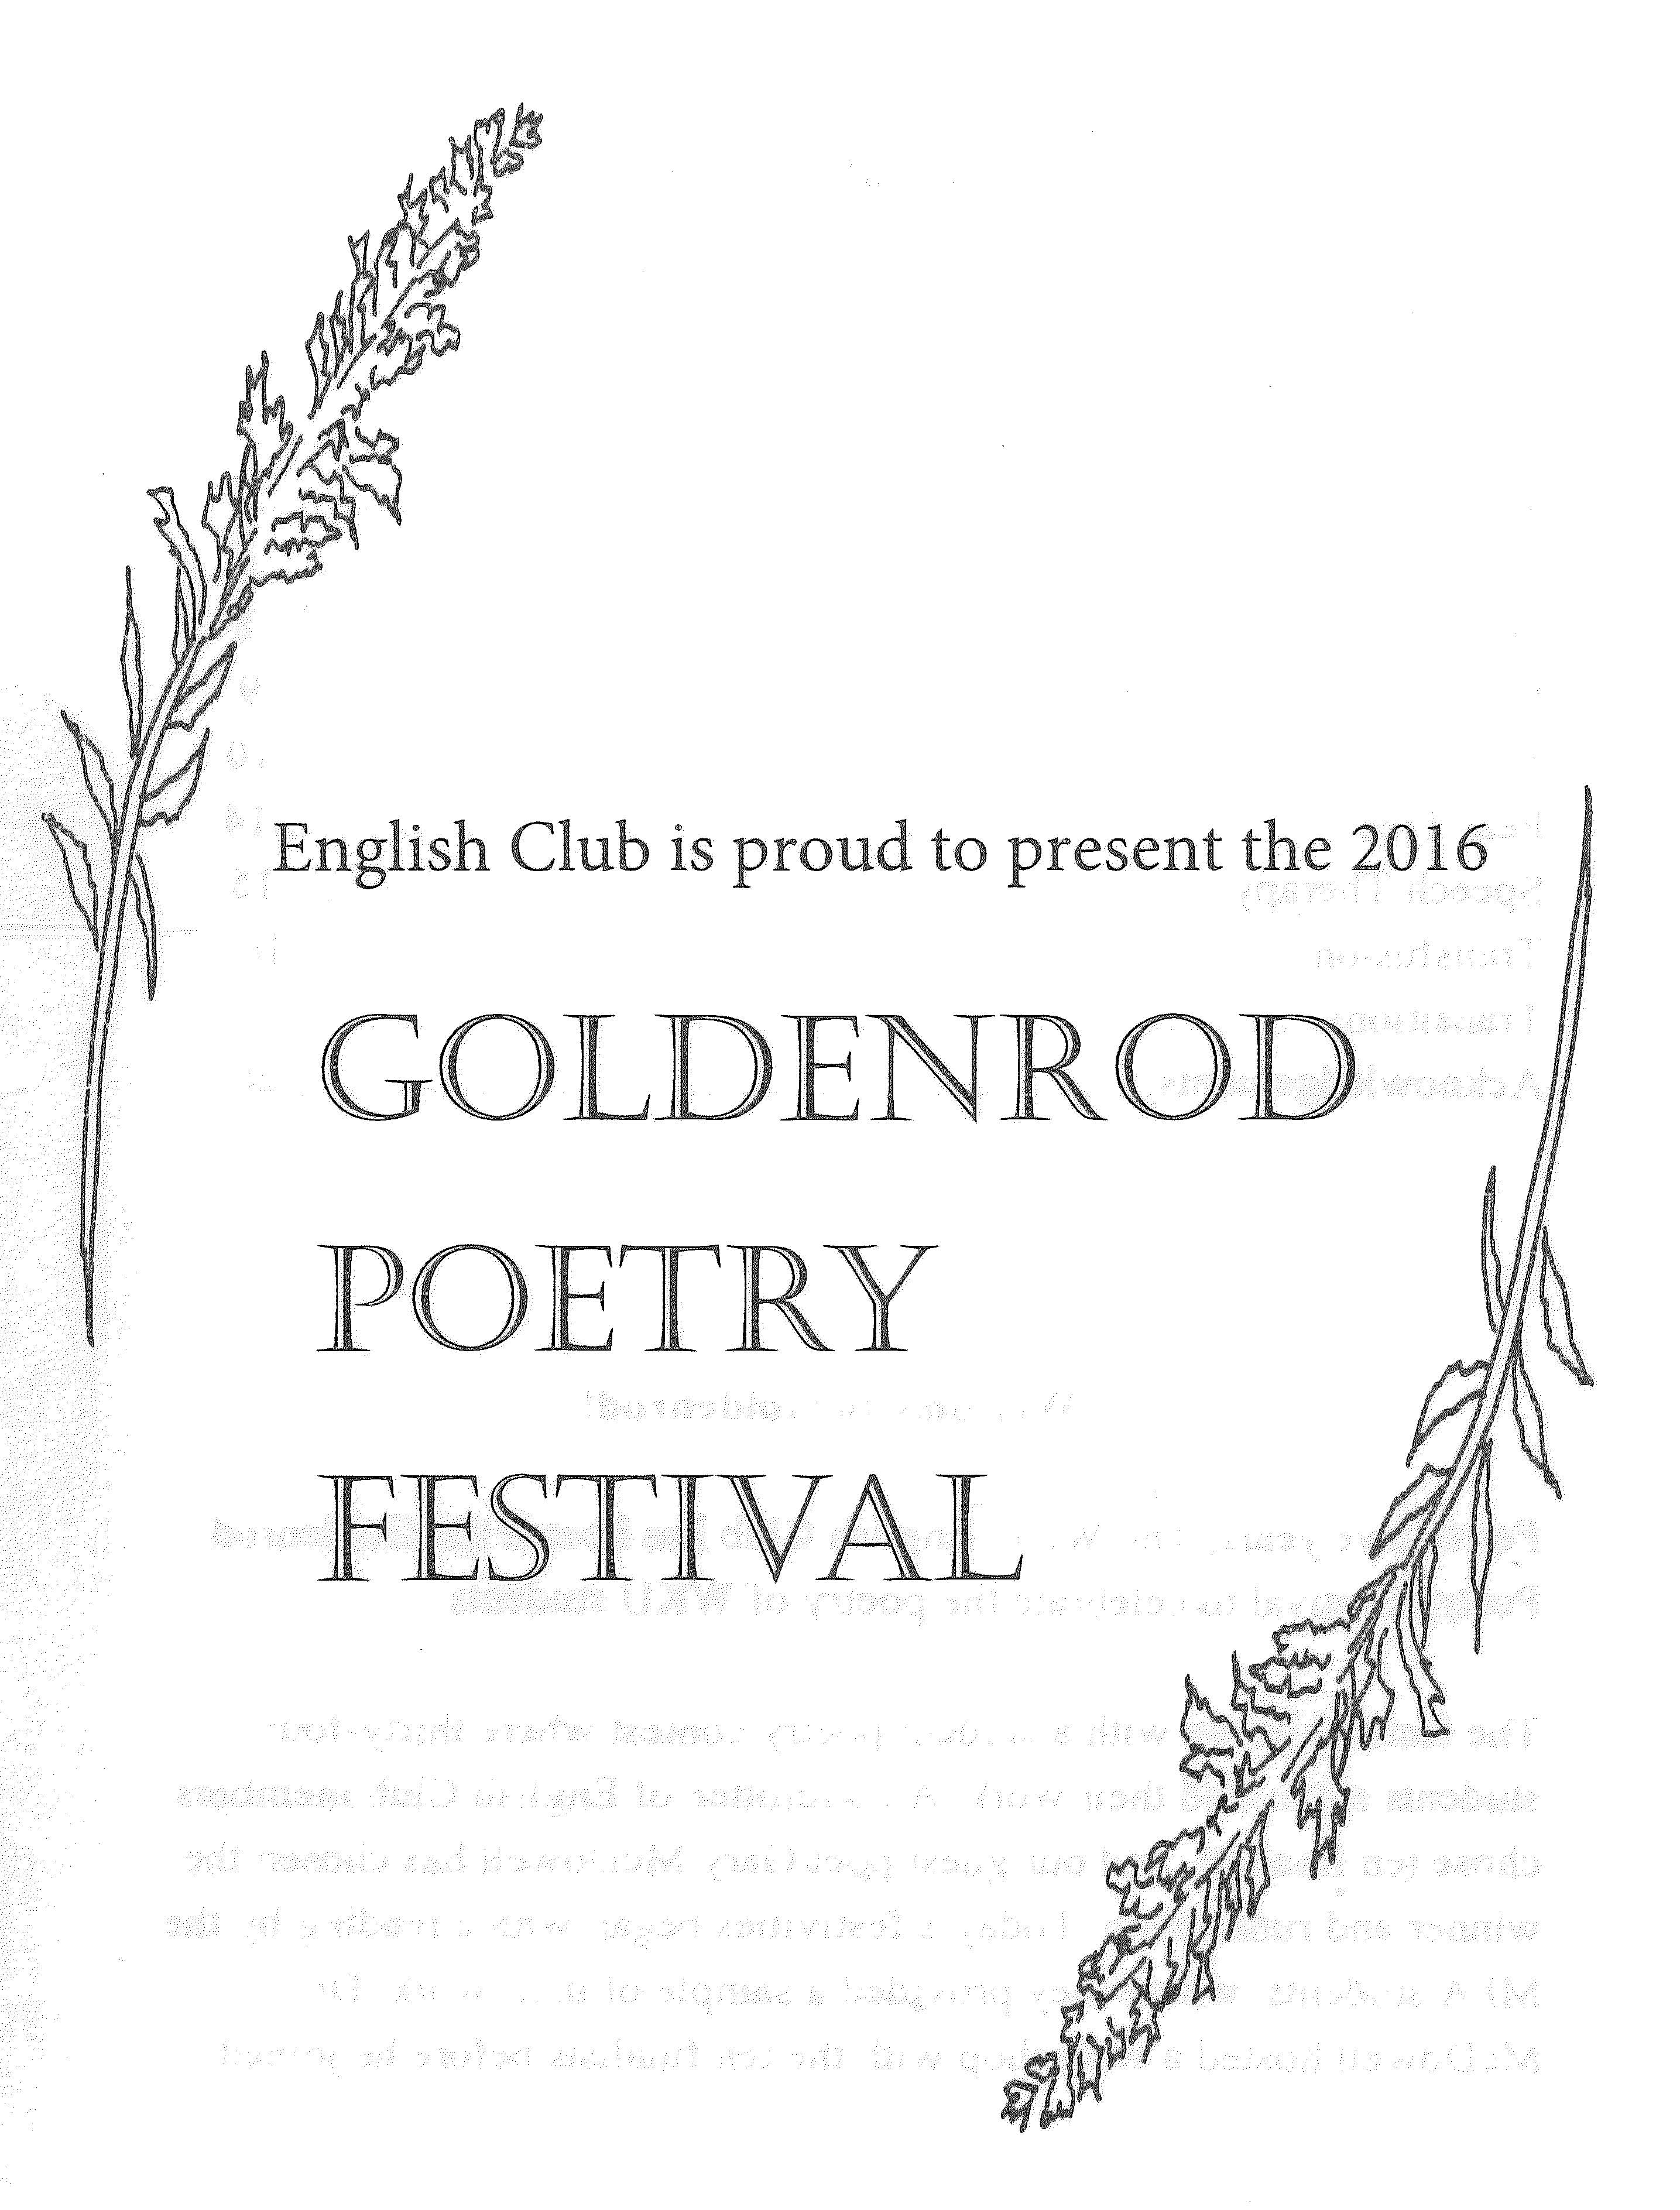 Goldenrod Poetry Festival